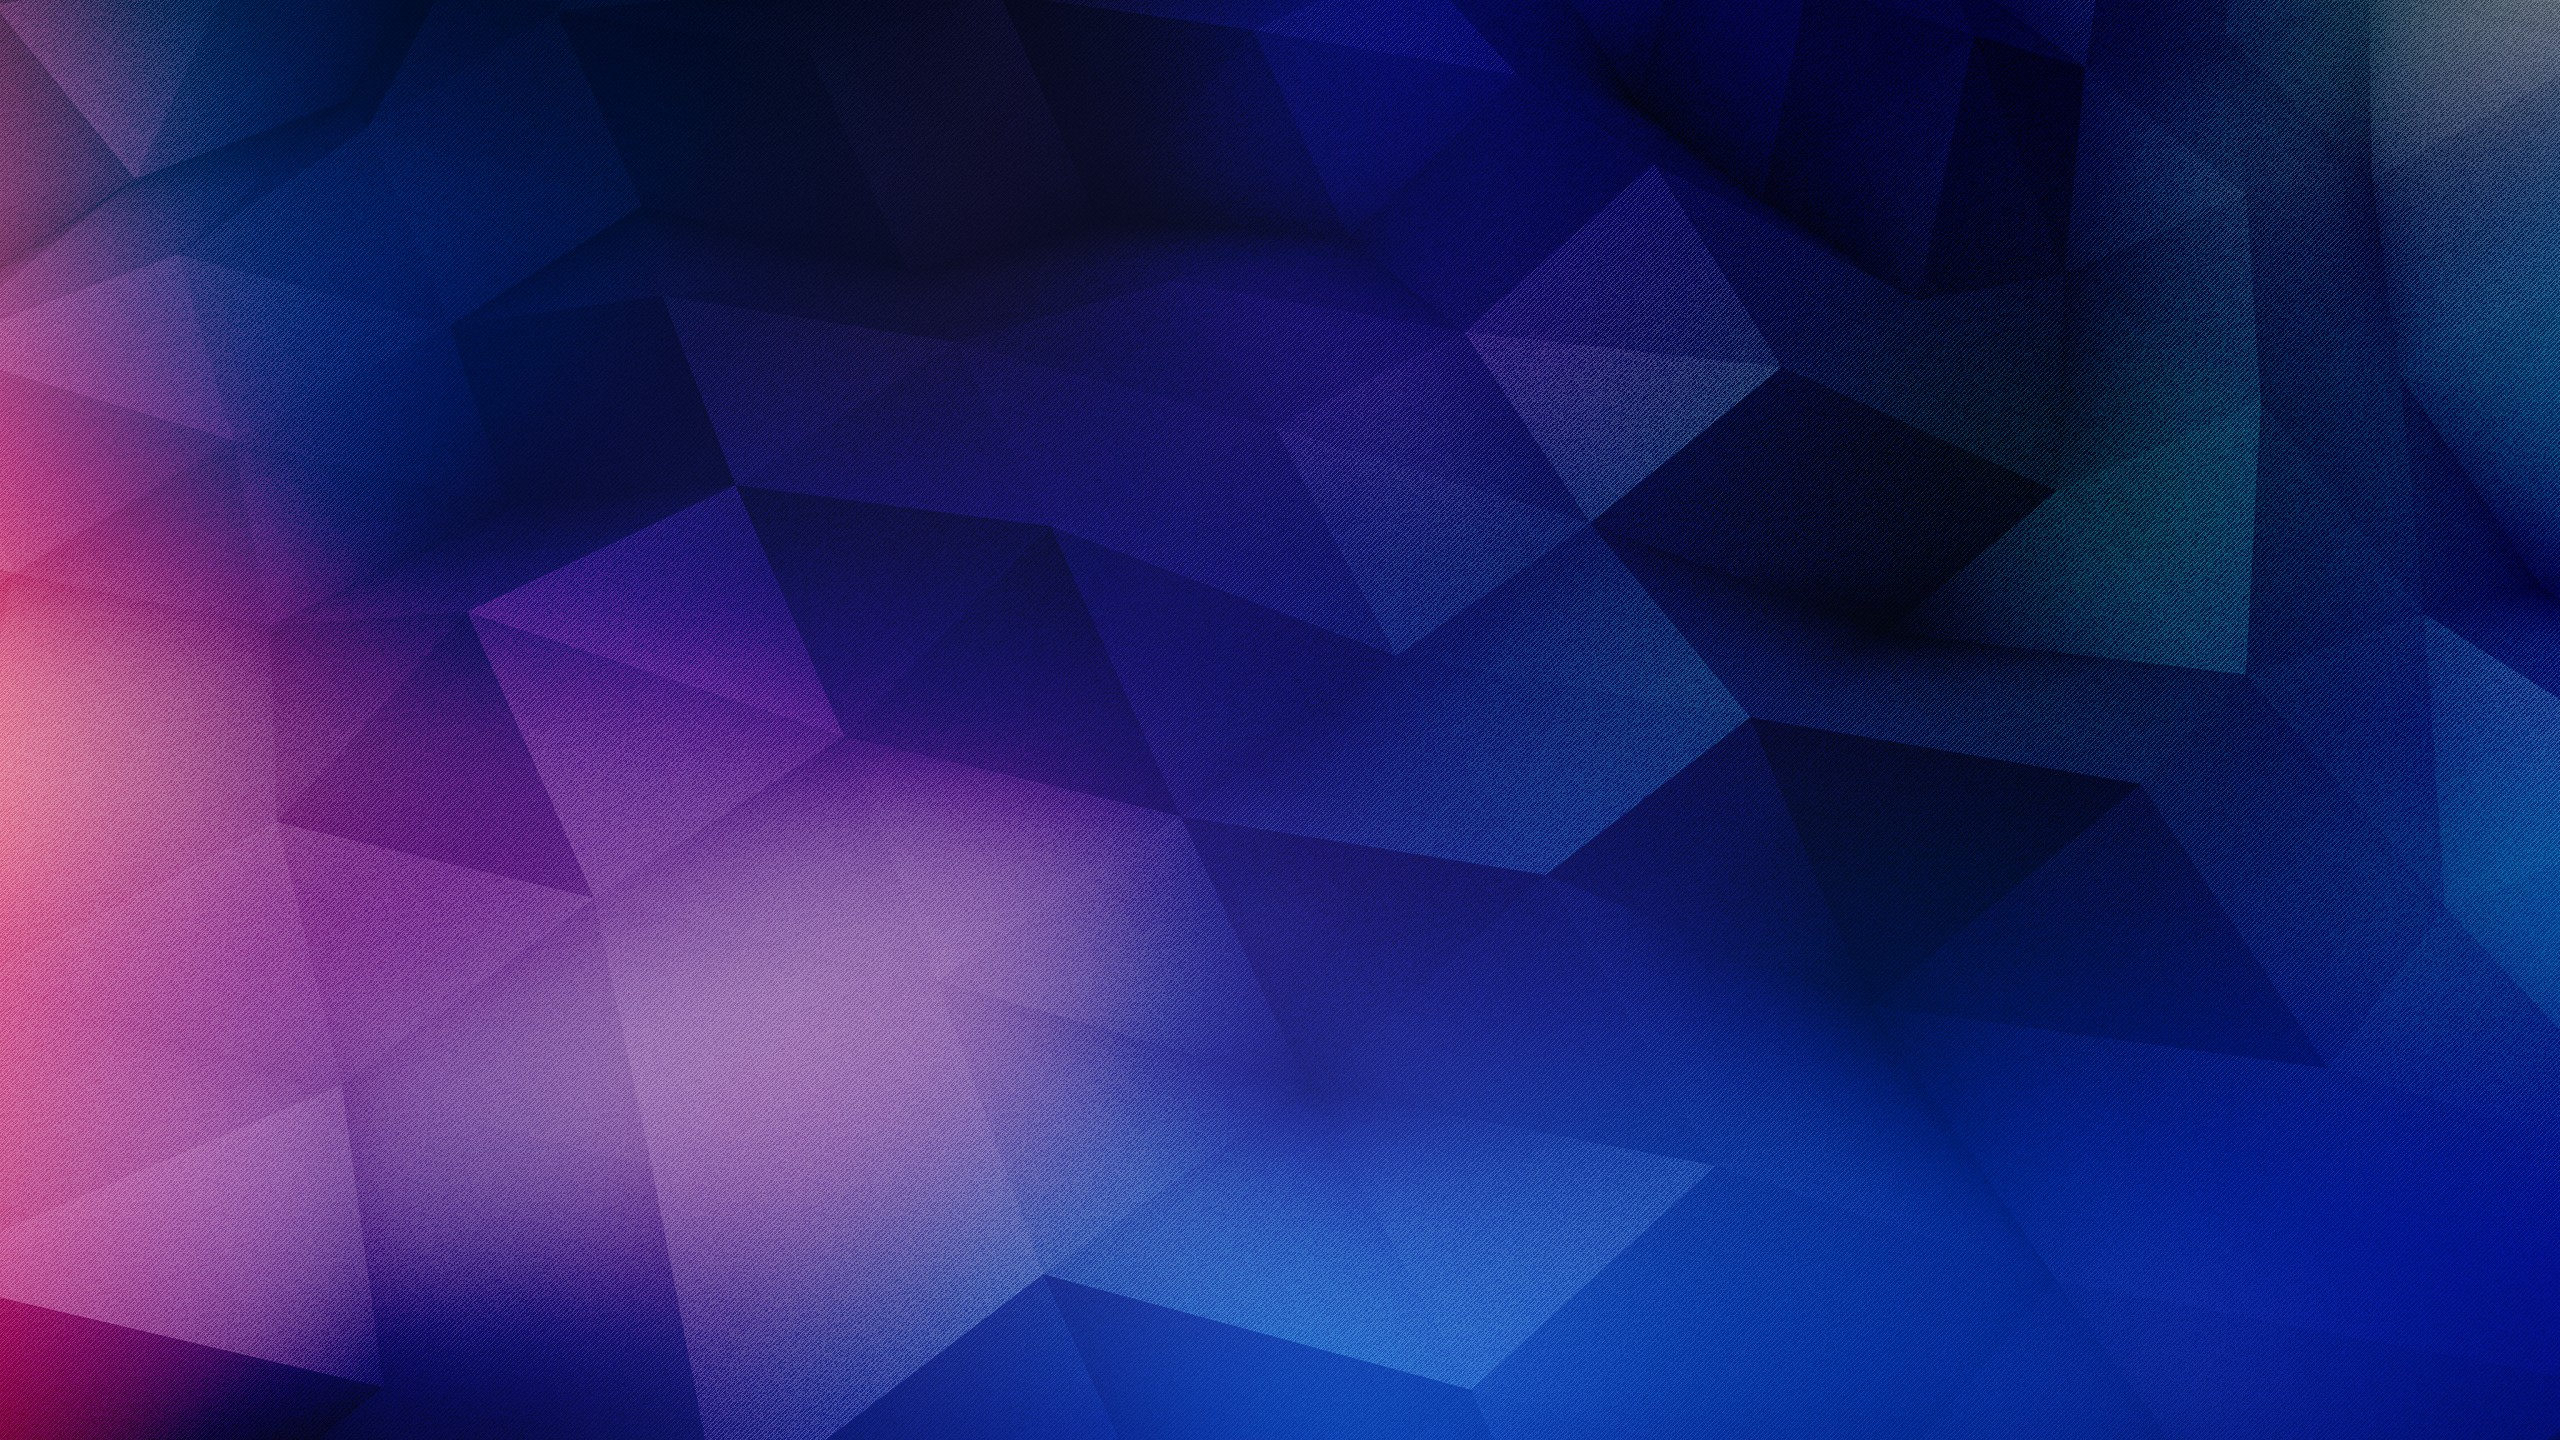 Abstract geometric wallpapers hd 3235 wallpaper cool walldiskpaper - Abstract Geometric Wallpapers Hd Wallpapersafari